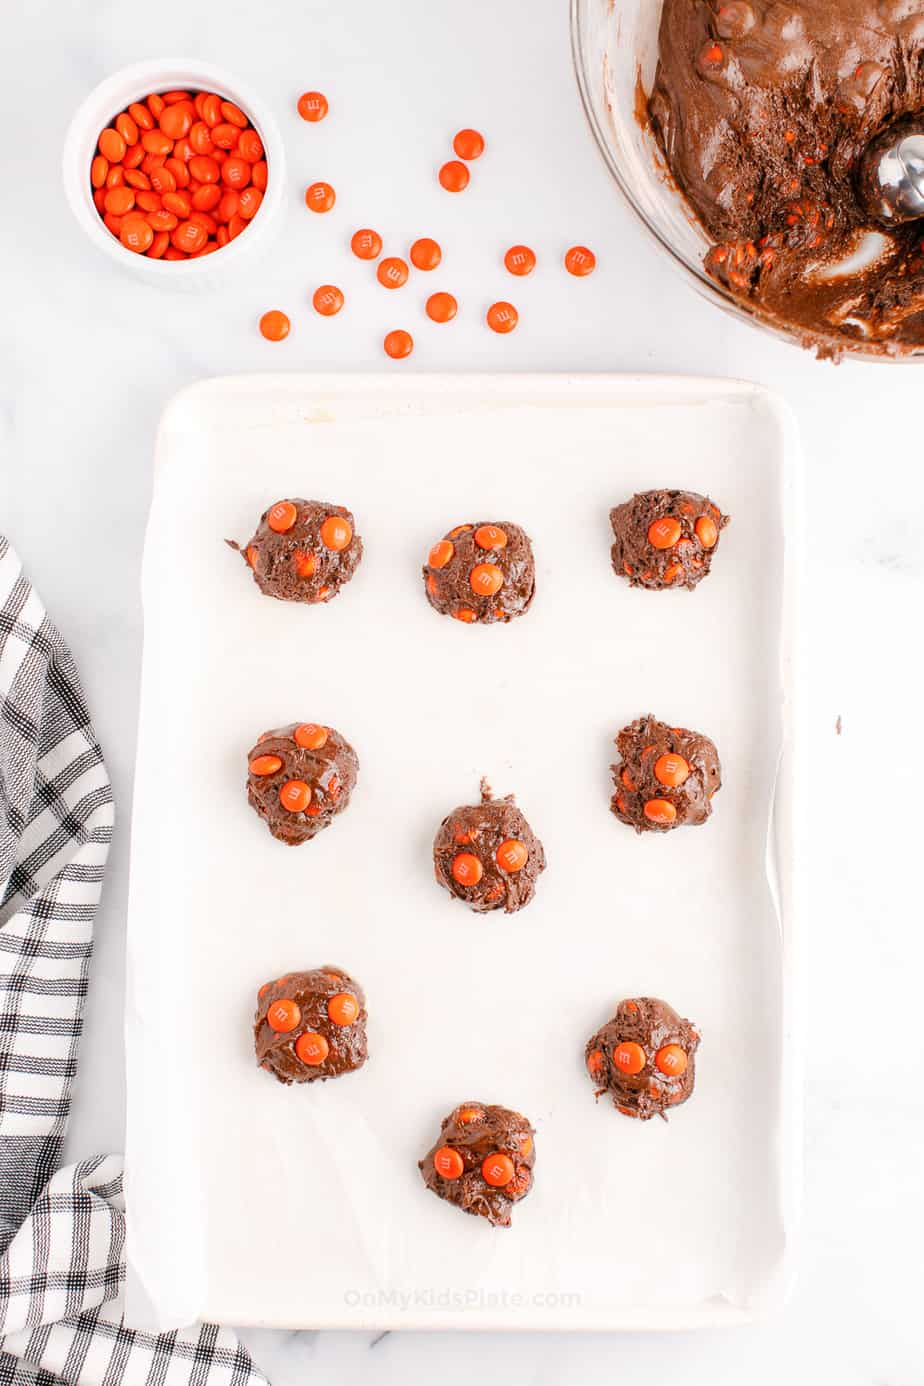 Cookie dough spaced evenly on a pan with more orange candies and chocolate cookie dough in bowls in the top.